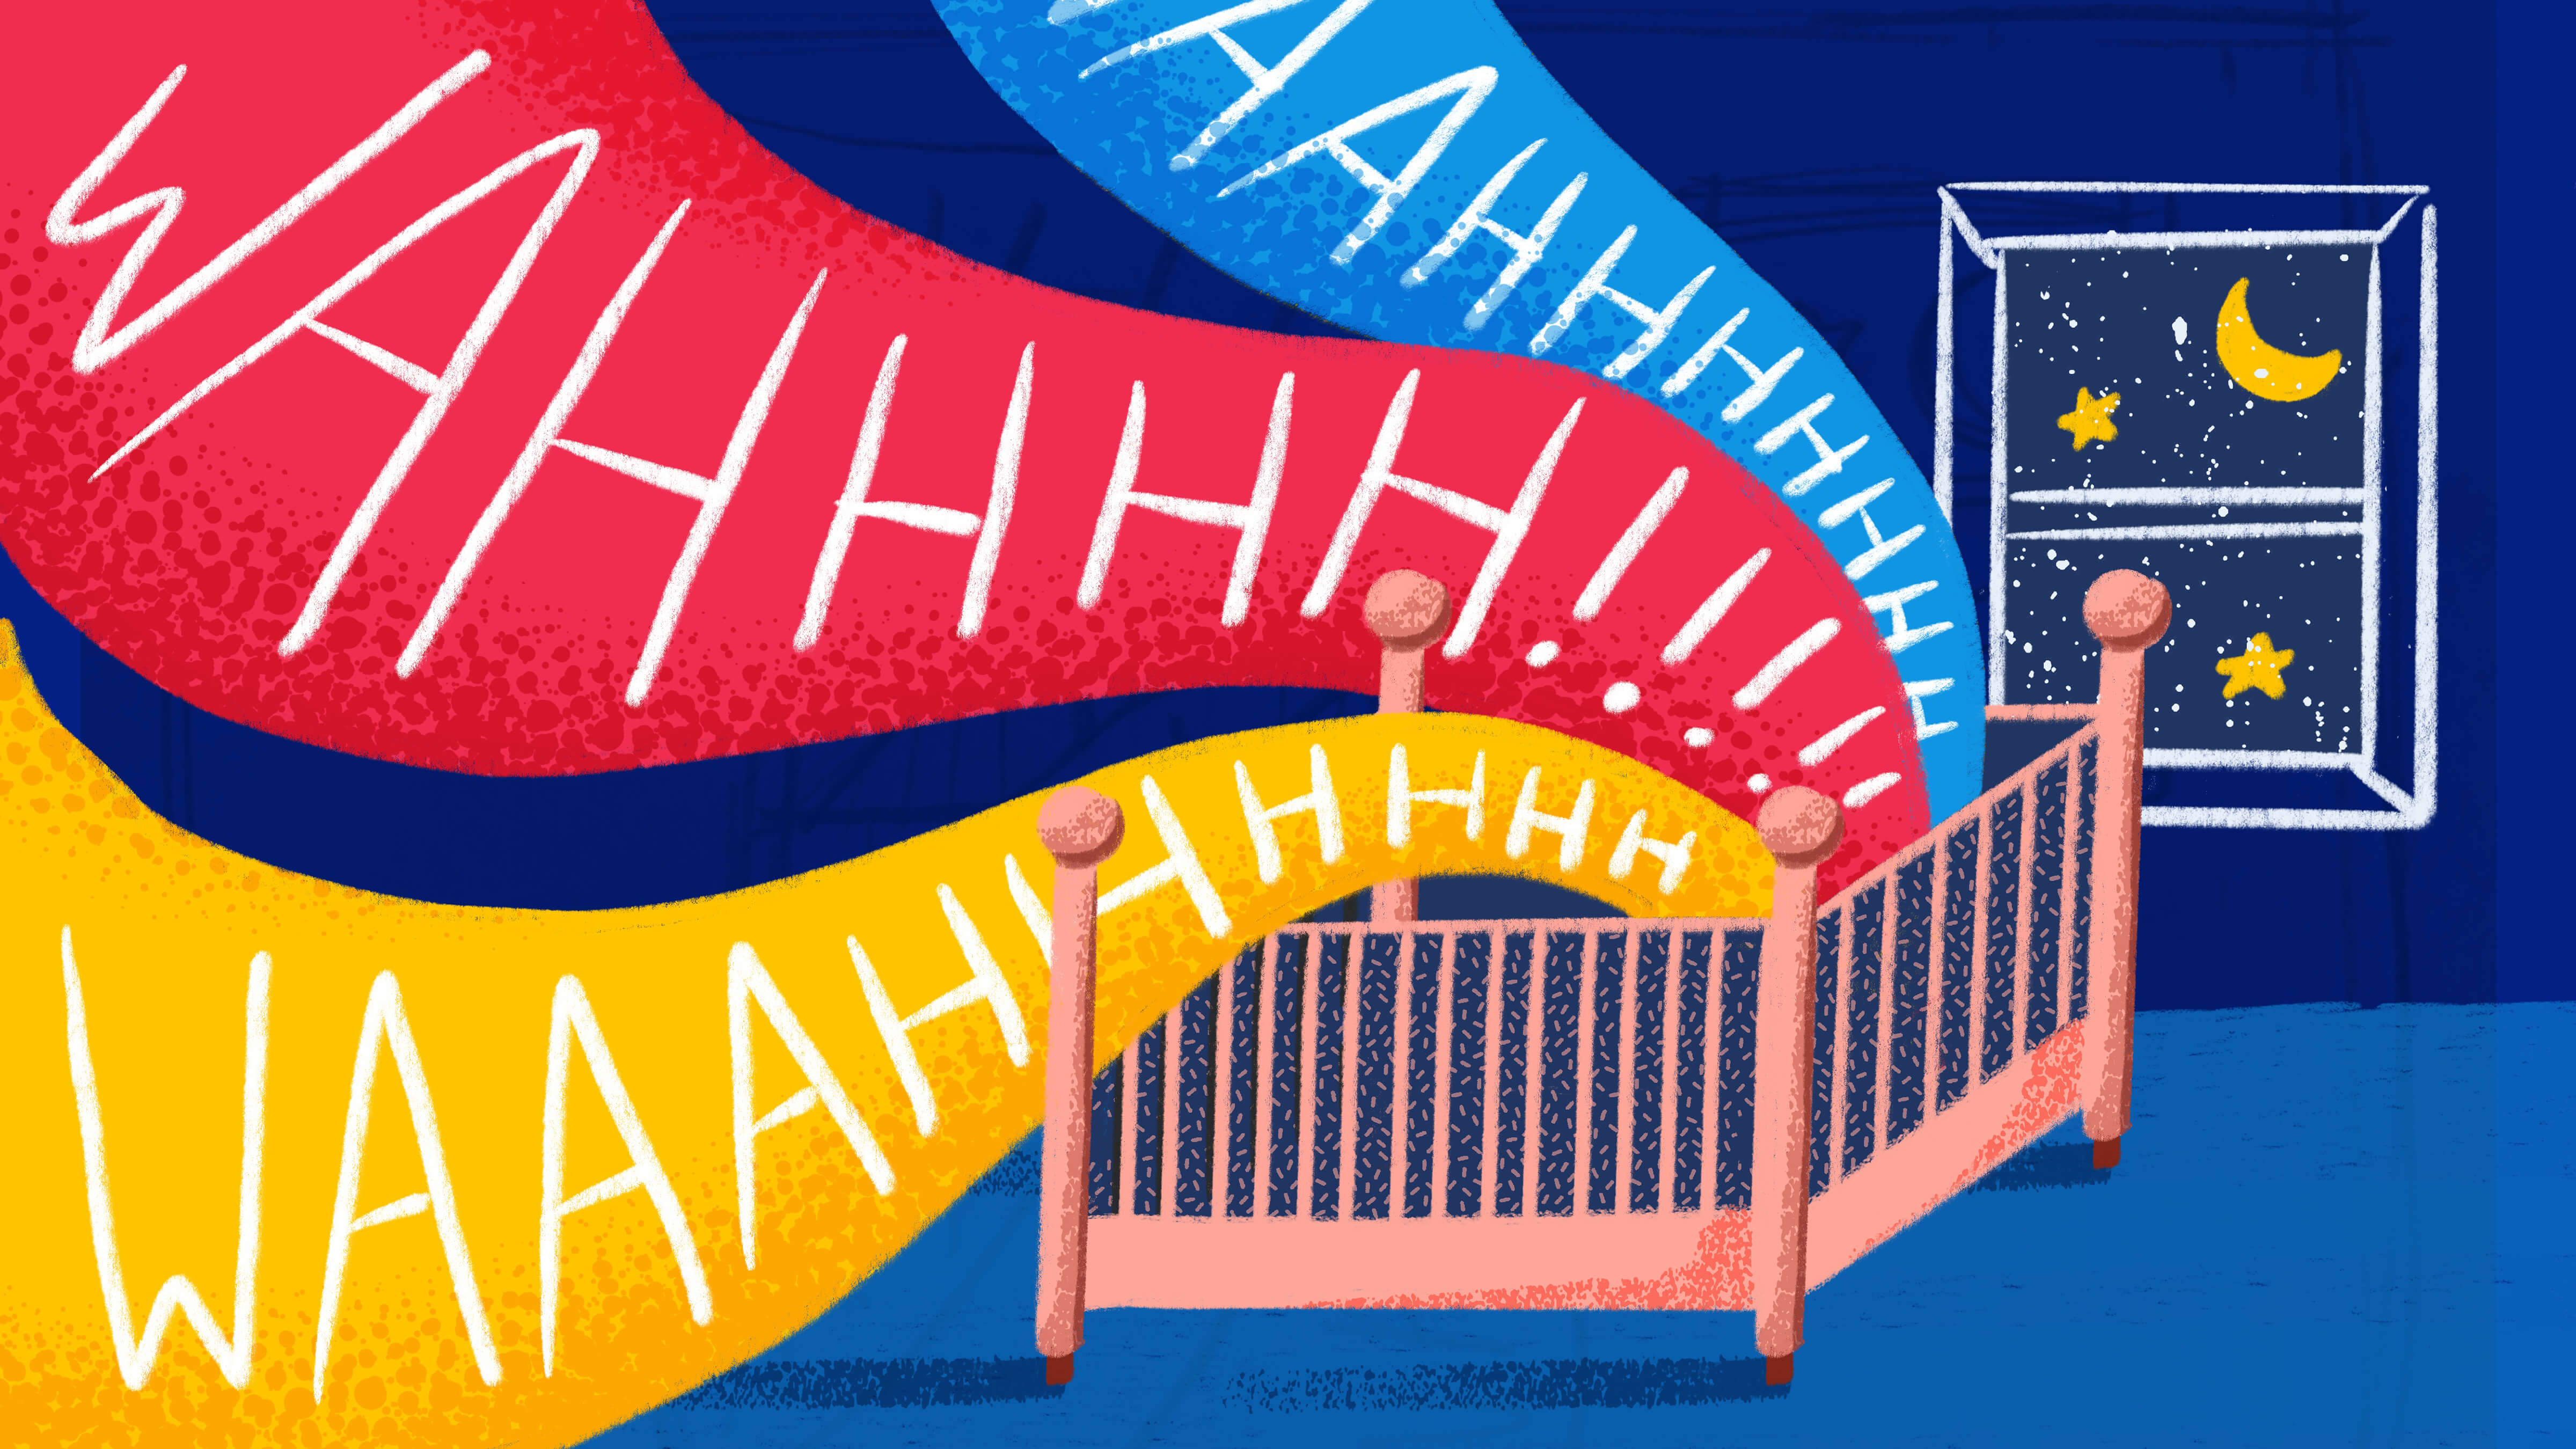 The exhausting, lucrative world of childhood sleep consulting